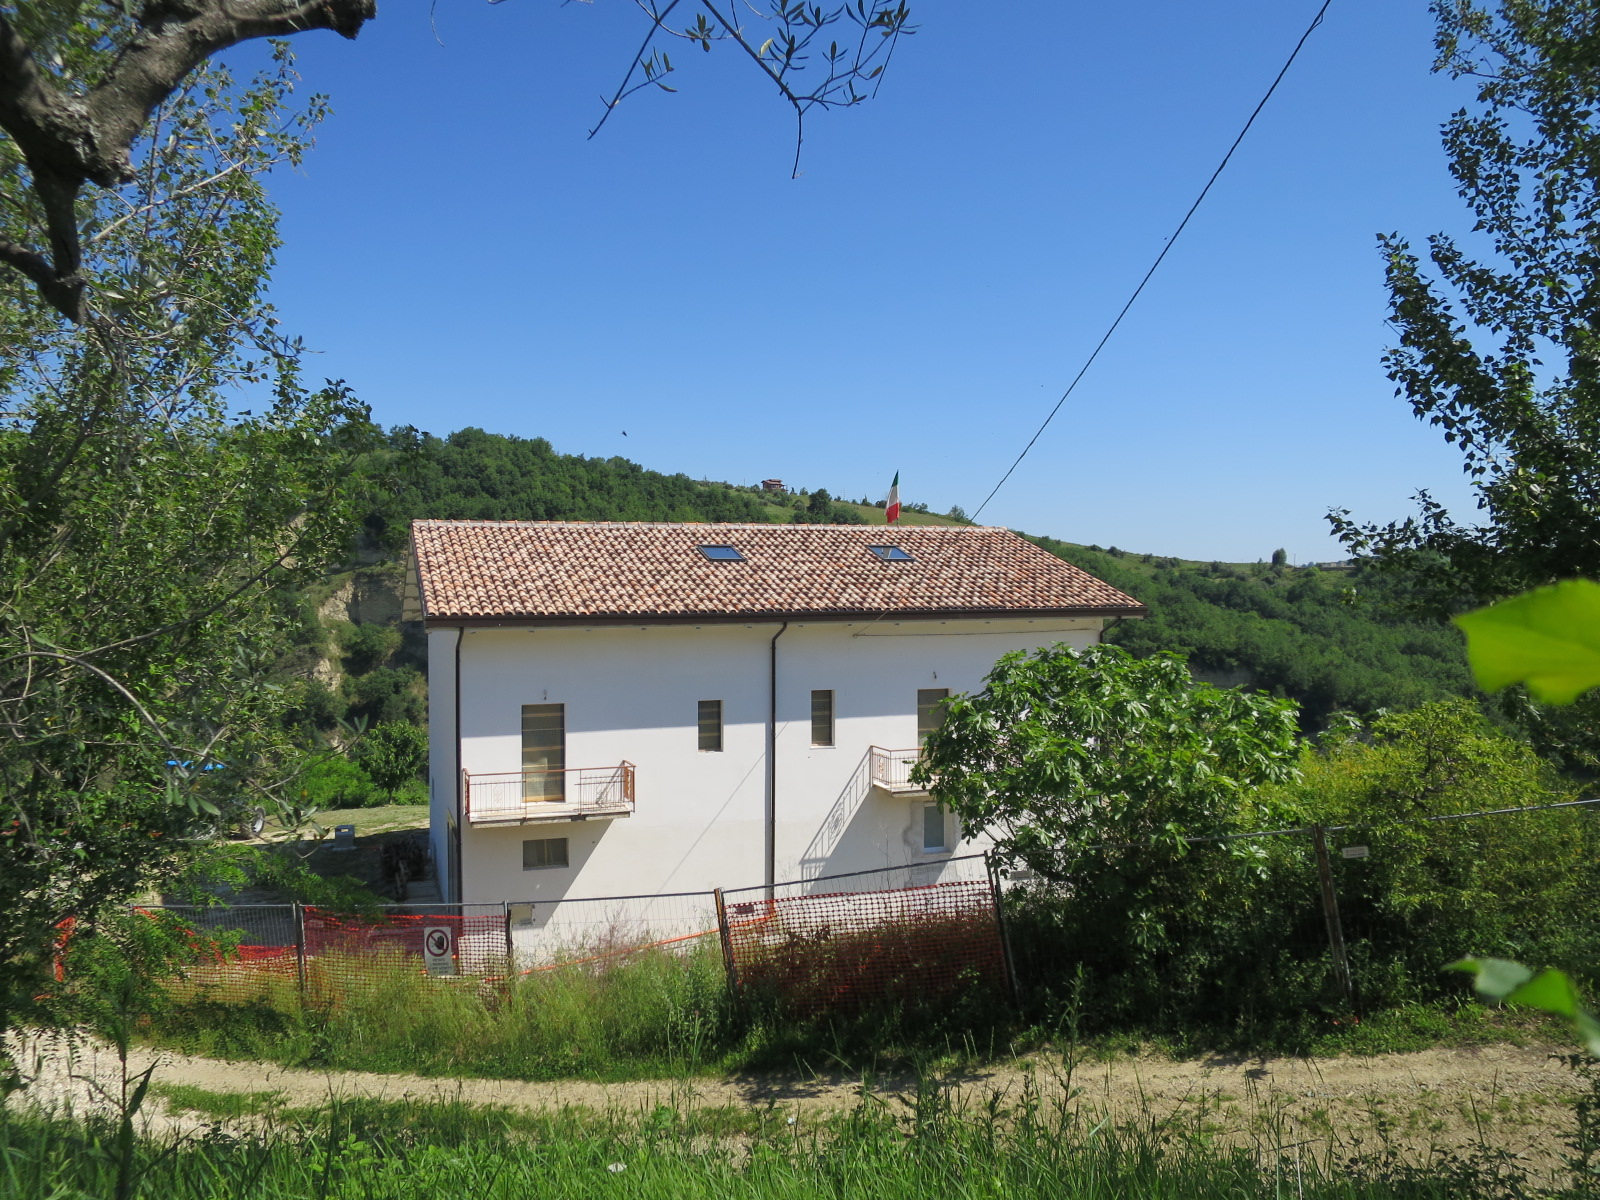 Country Houses Country Houses for sale Montefino (TE), Casa Nocciolo - Montefino - EUR 201.446 370